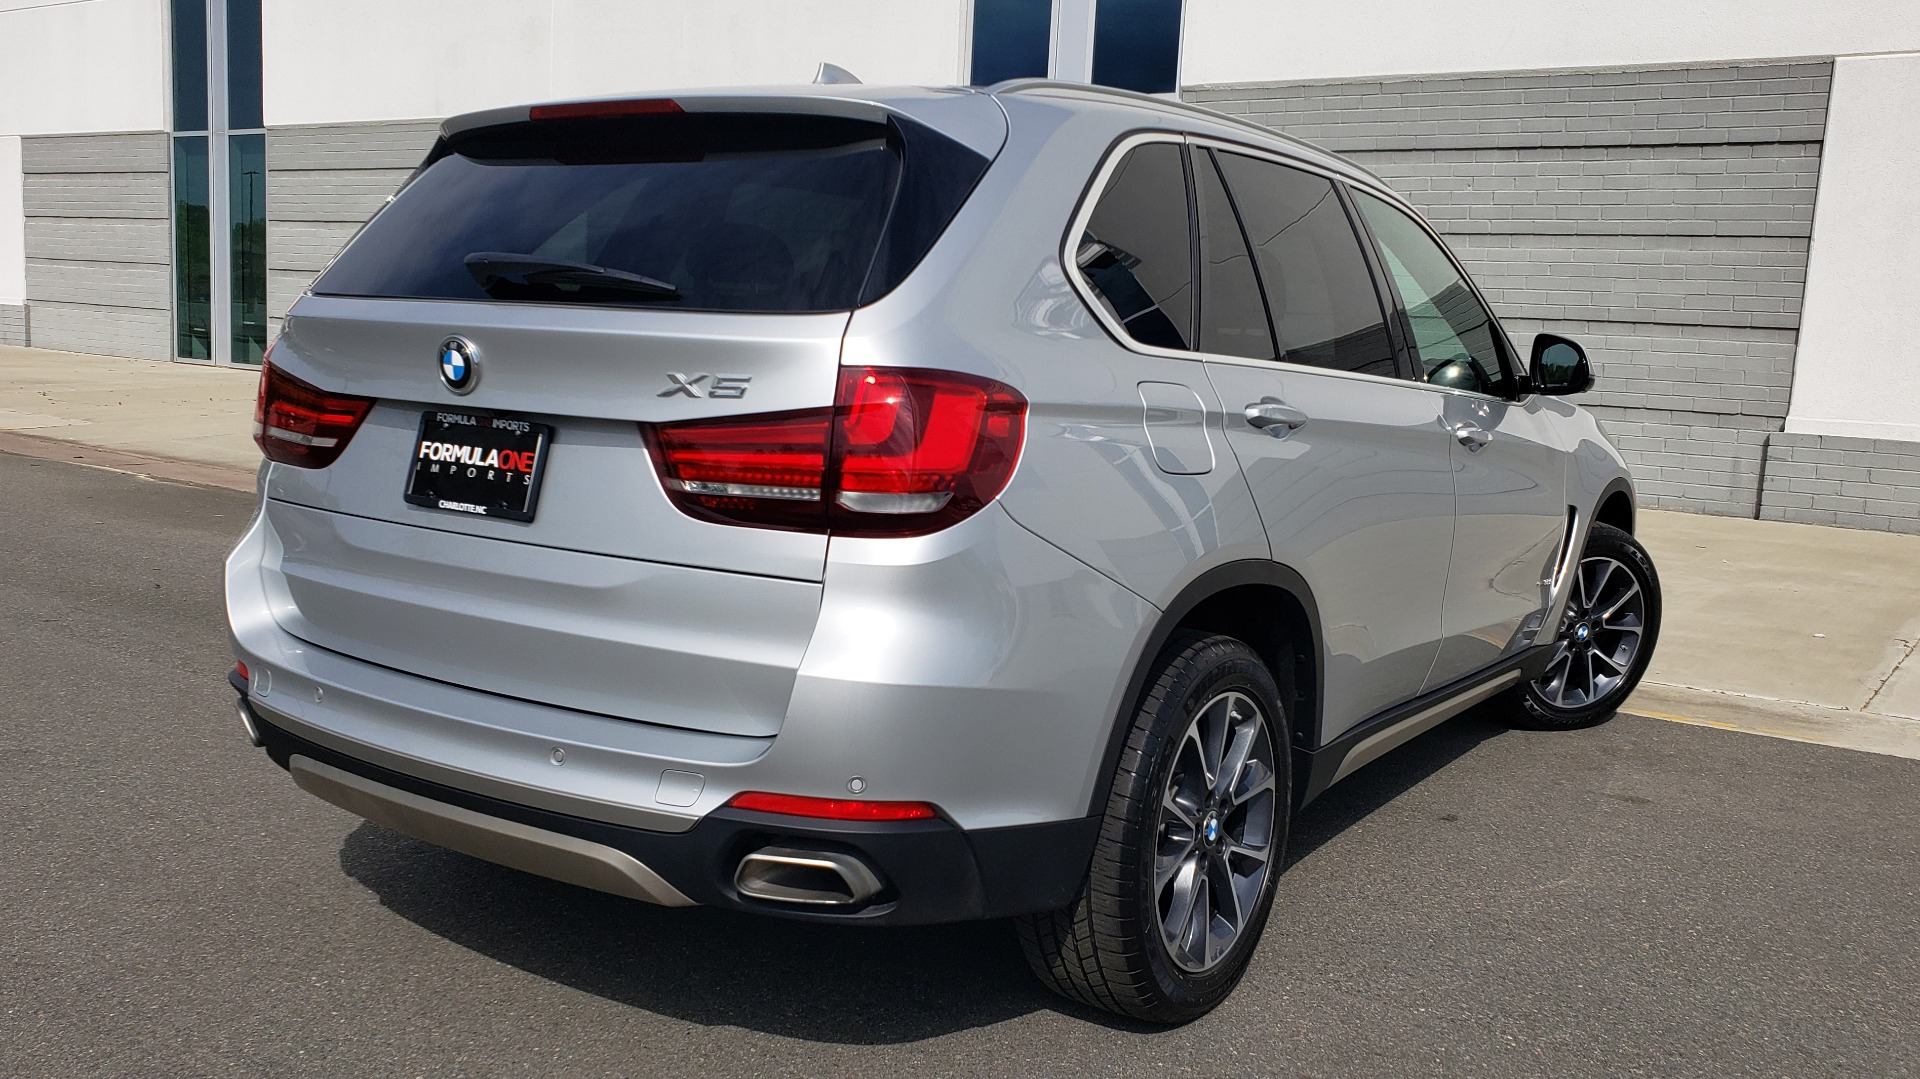 Used 2018 BMW X5 XDRIVE35I PREMIUM / NAV / PANO-ROOF / DRIVER ASST / REARVIEW for sale Sold at Formula Imports in Charlotte NC 28227 2